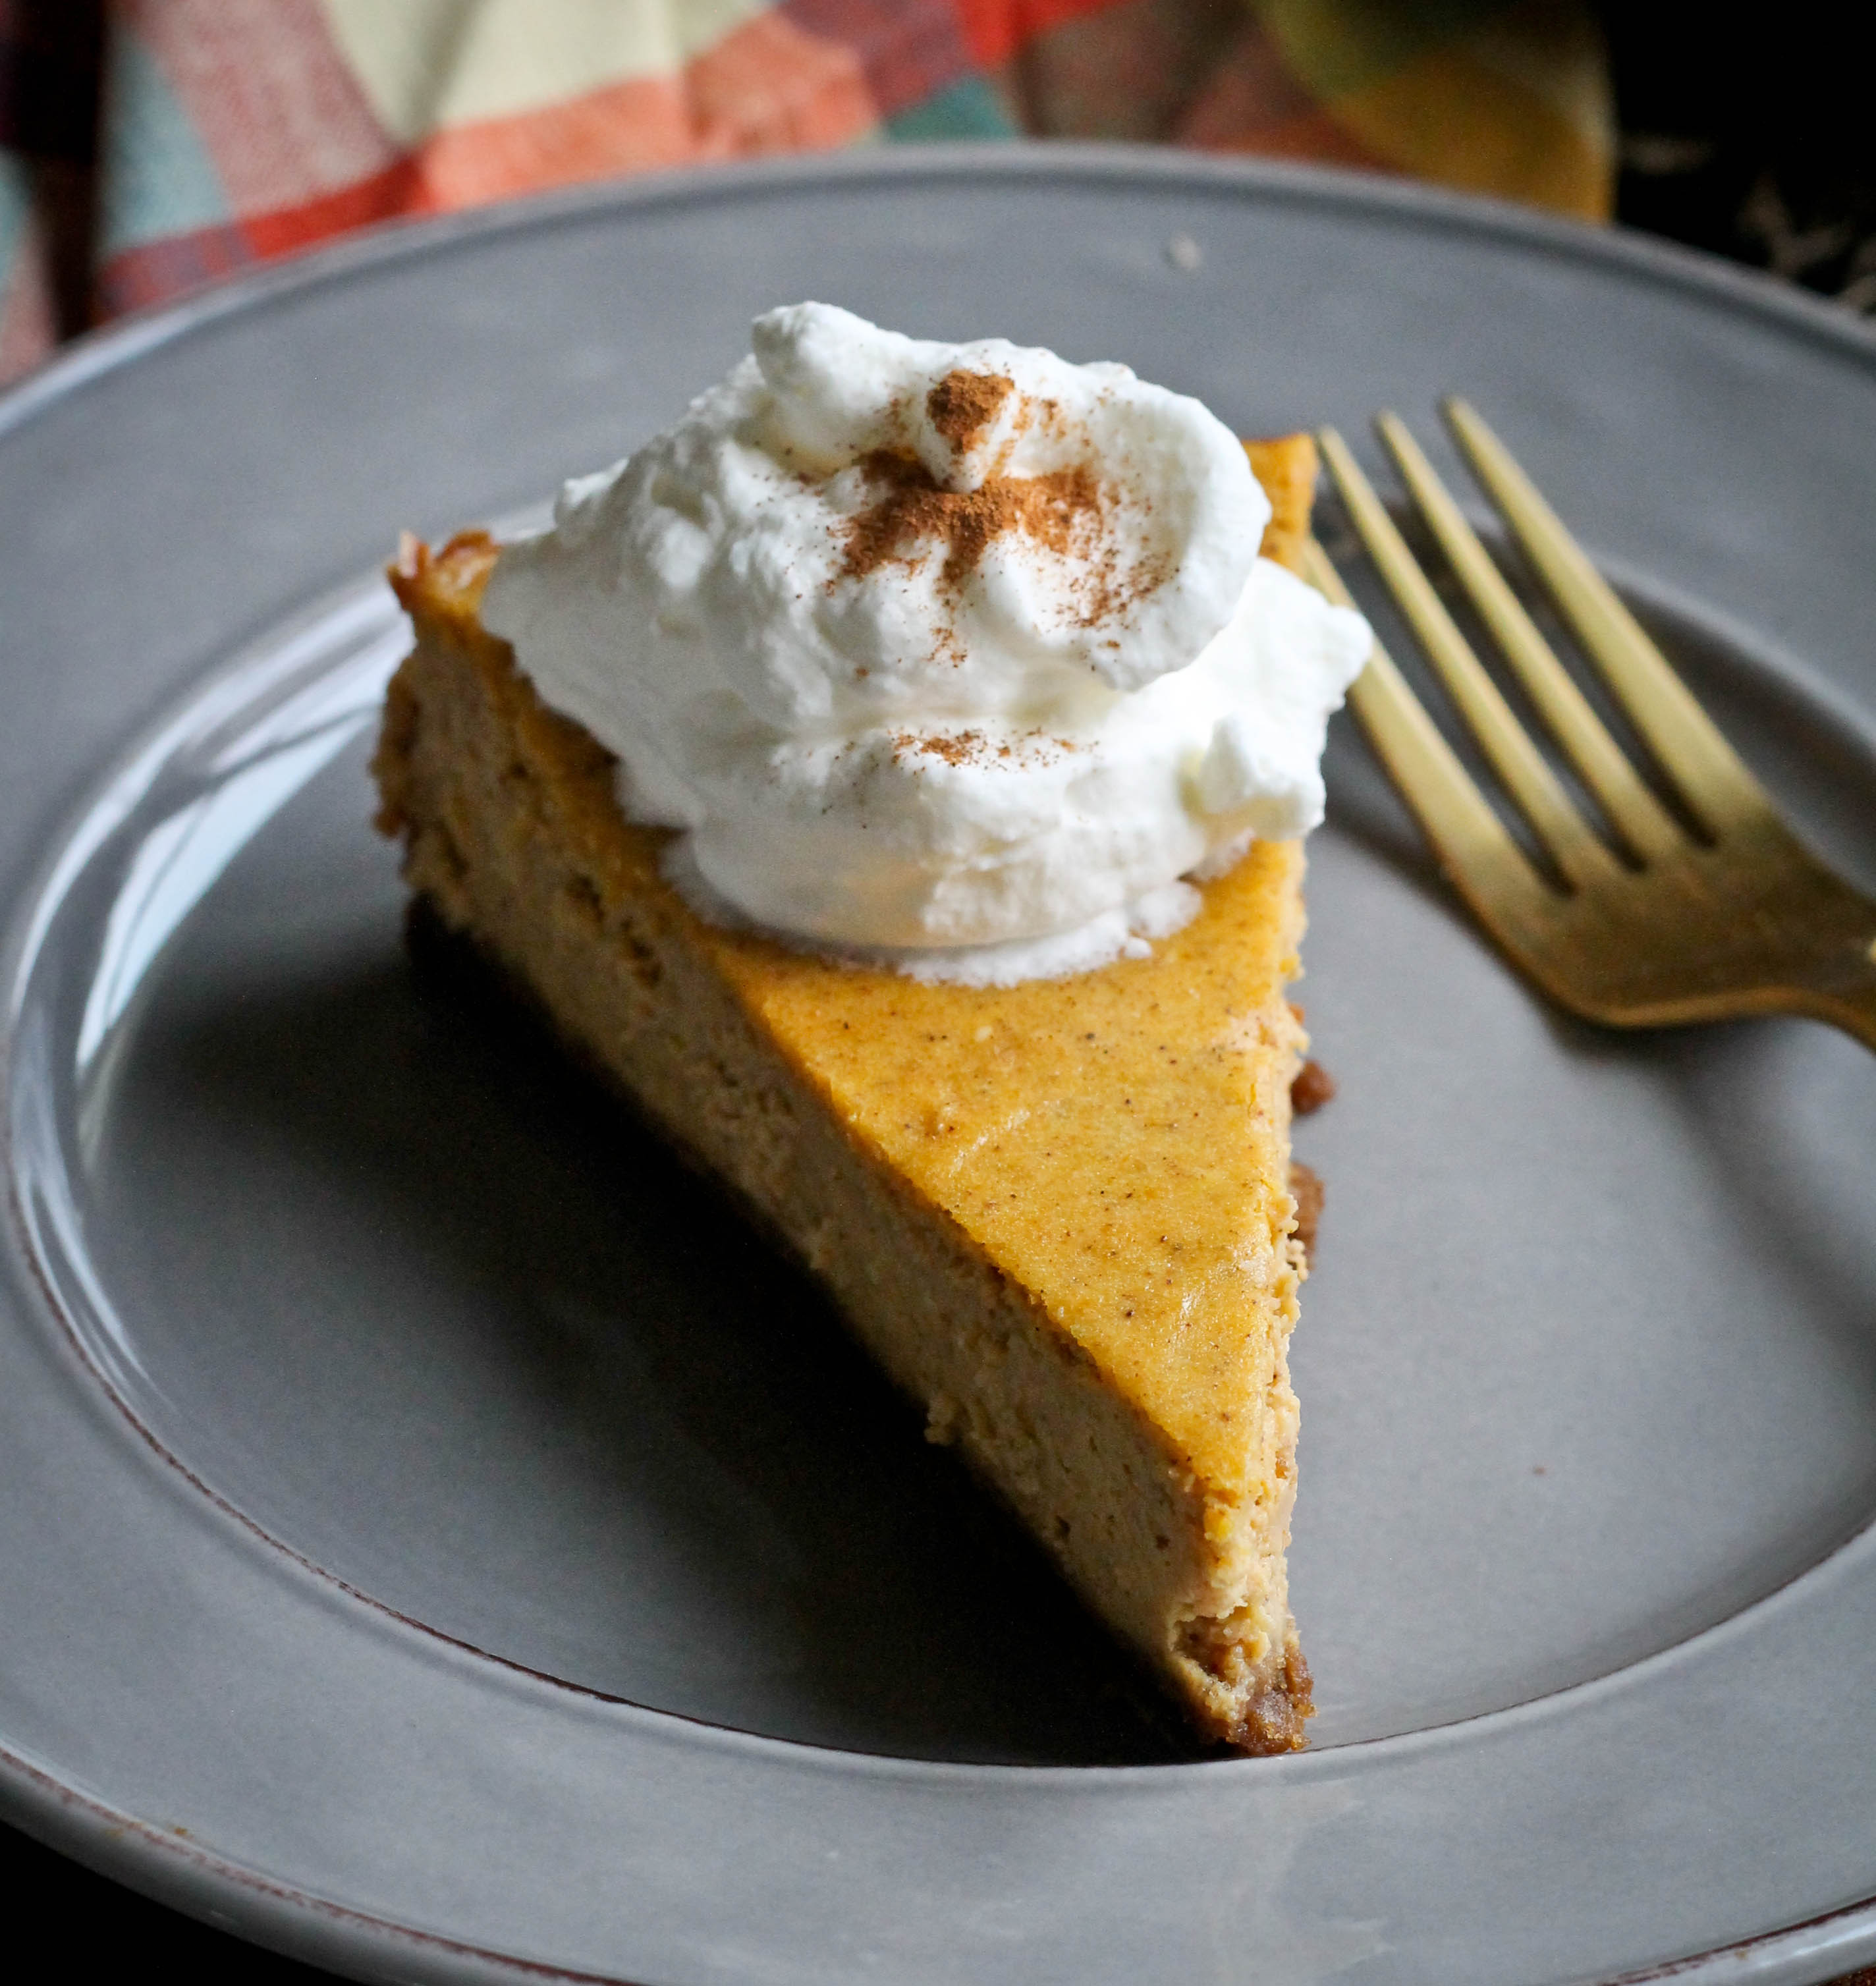 PUMPKIN CHEESECAKE WITH WHISKEY WHIPPED CREAM